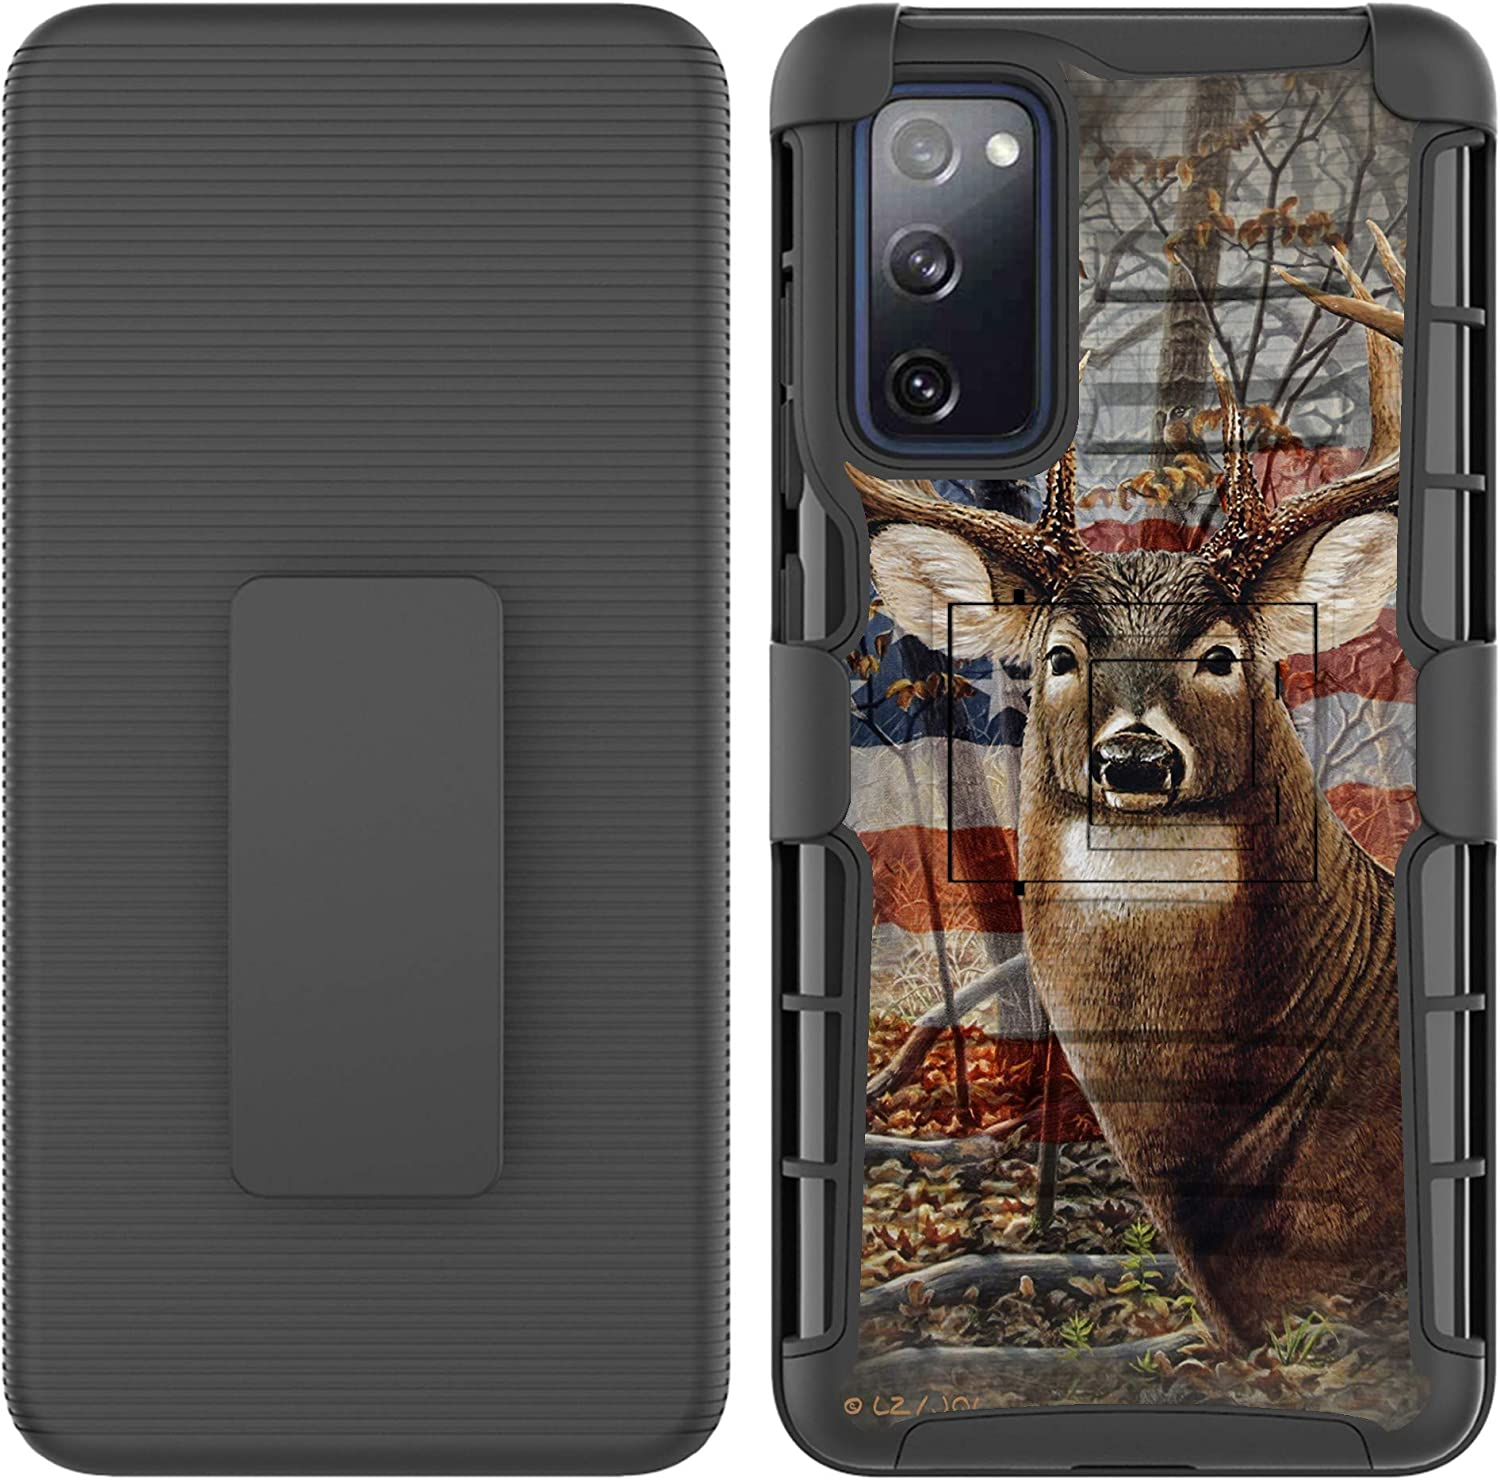 BEYOND CELL Rugged Free shipping anywhere Attention brand in the nation Case Compatible with Galaxy Samsung S20 FE 5G